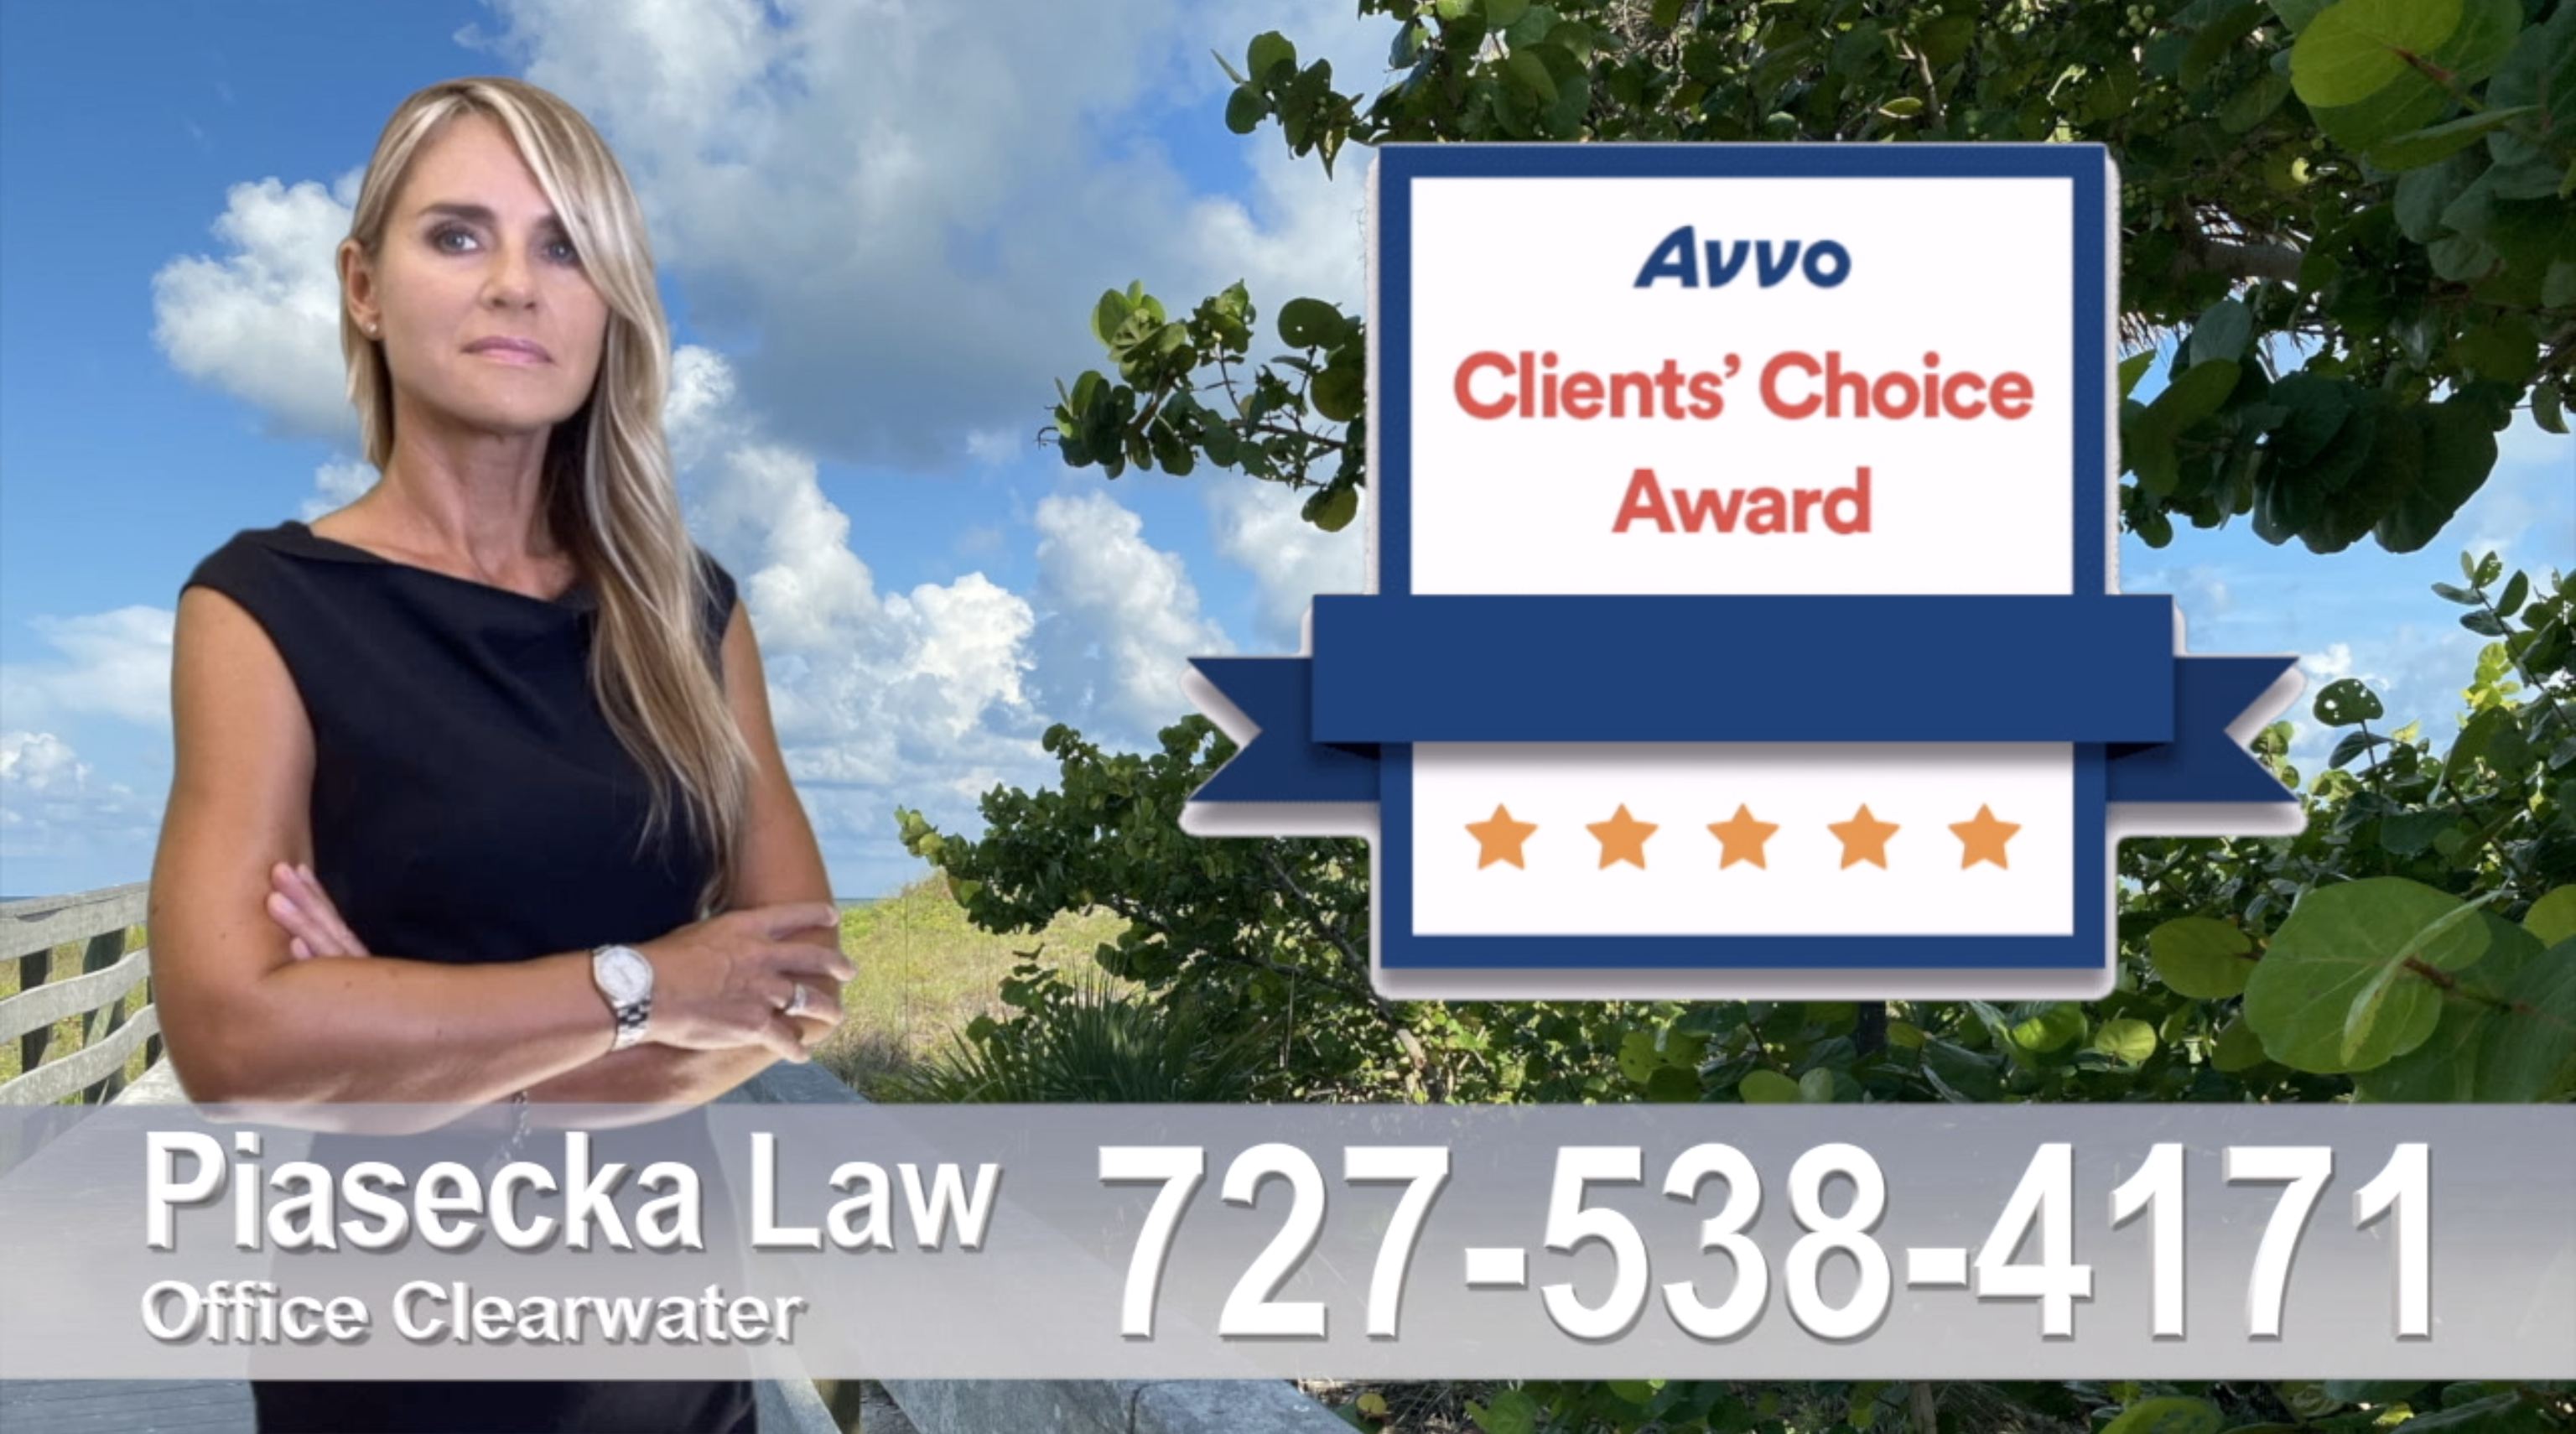 Polish Immigration Attorney lawyer, clients, reviews, award avvo